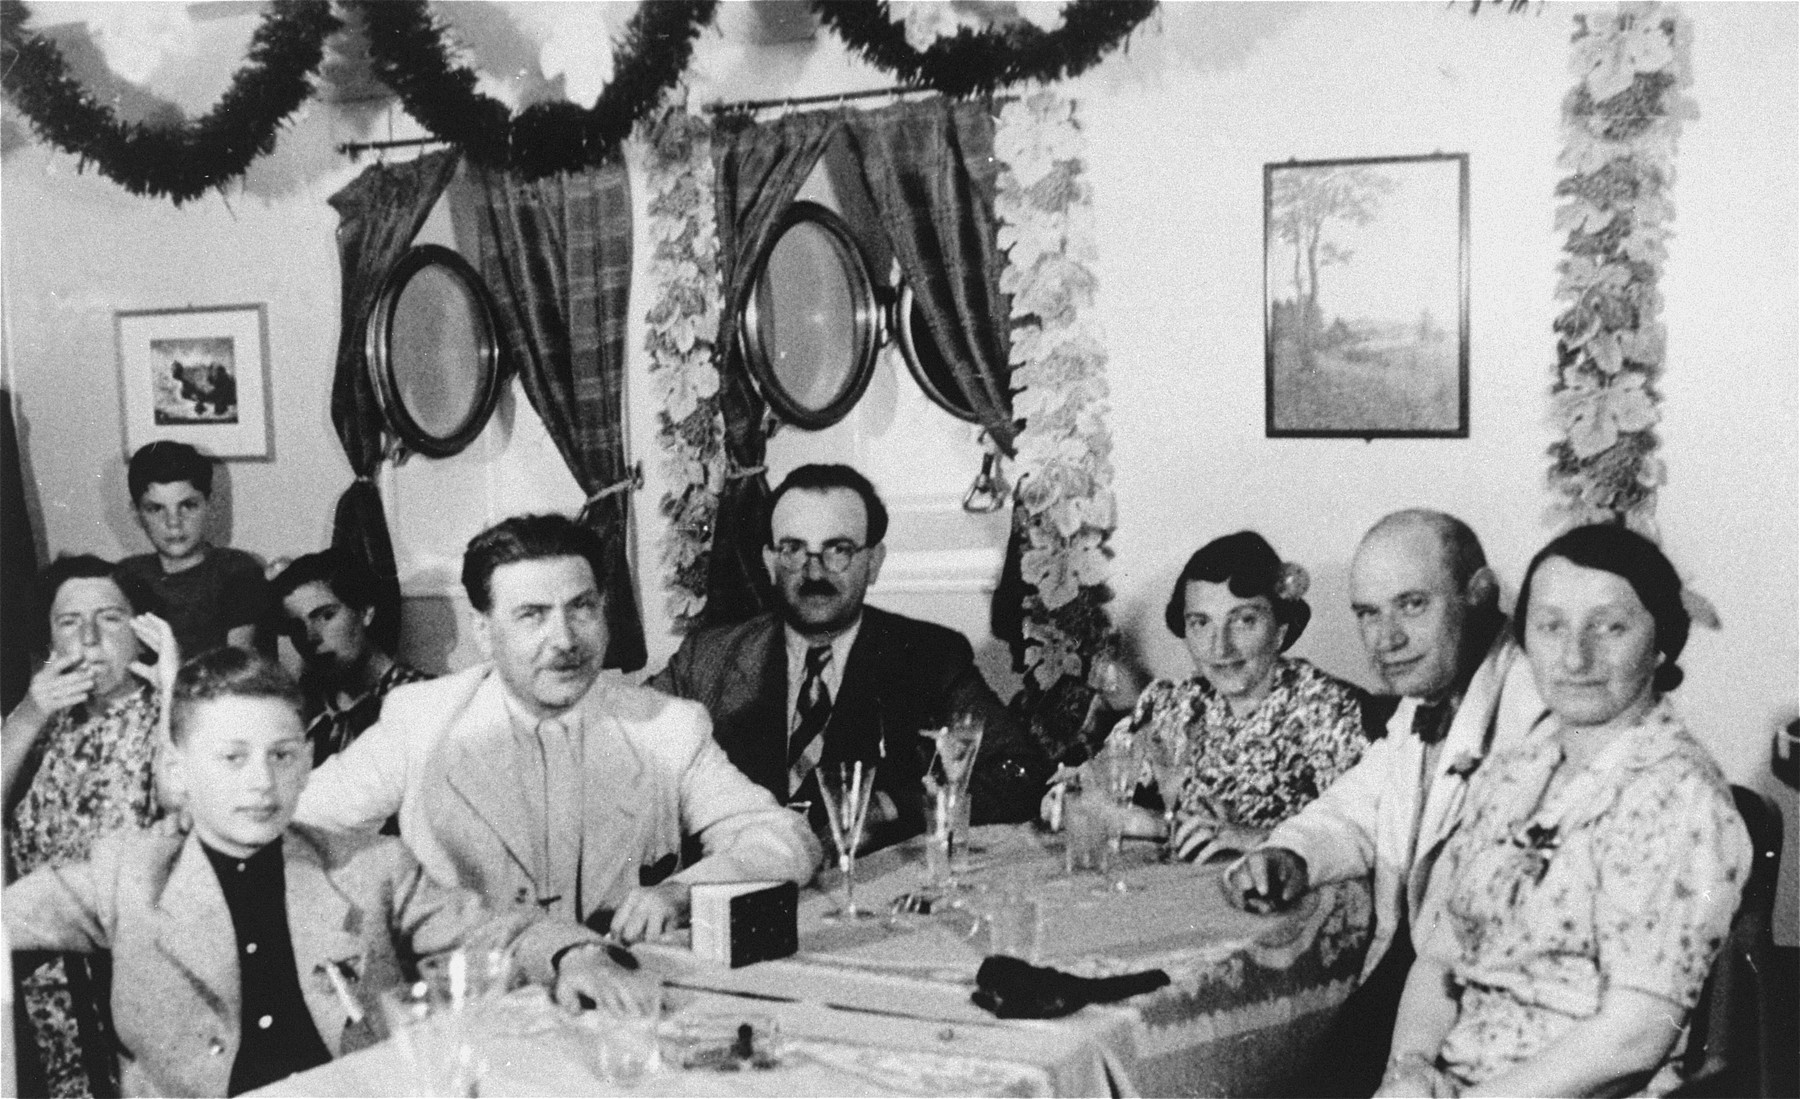 Passengers have a meal on the refugee ship MS St. Louis.    From a photo album belonging to St. Louis passenger Moritz Schoenberger.   Pictured from left to right are: Egon Salmon; Moritz Schoenberger; Paul Silzer; Erna Salmon; Julius Hermanns; and Leontine Silzer.